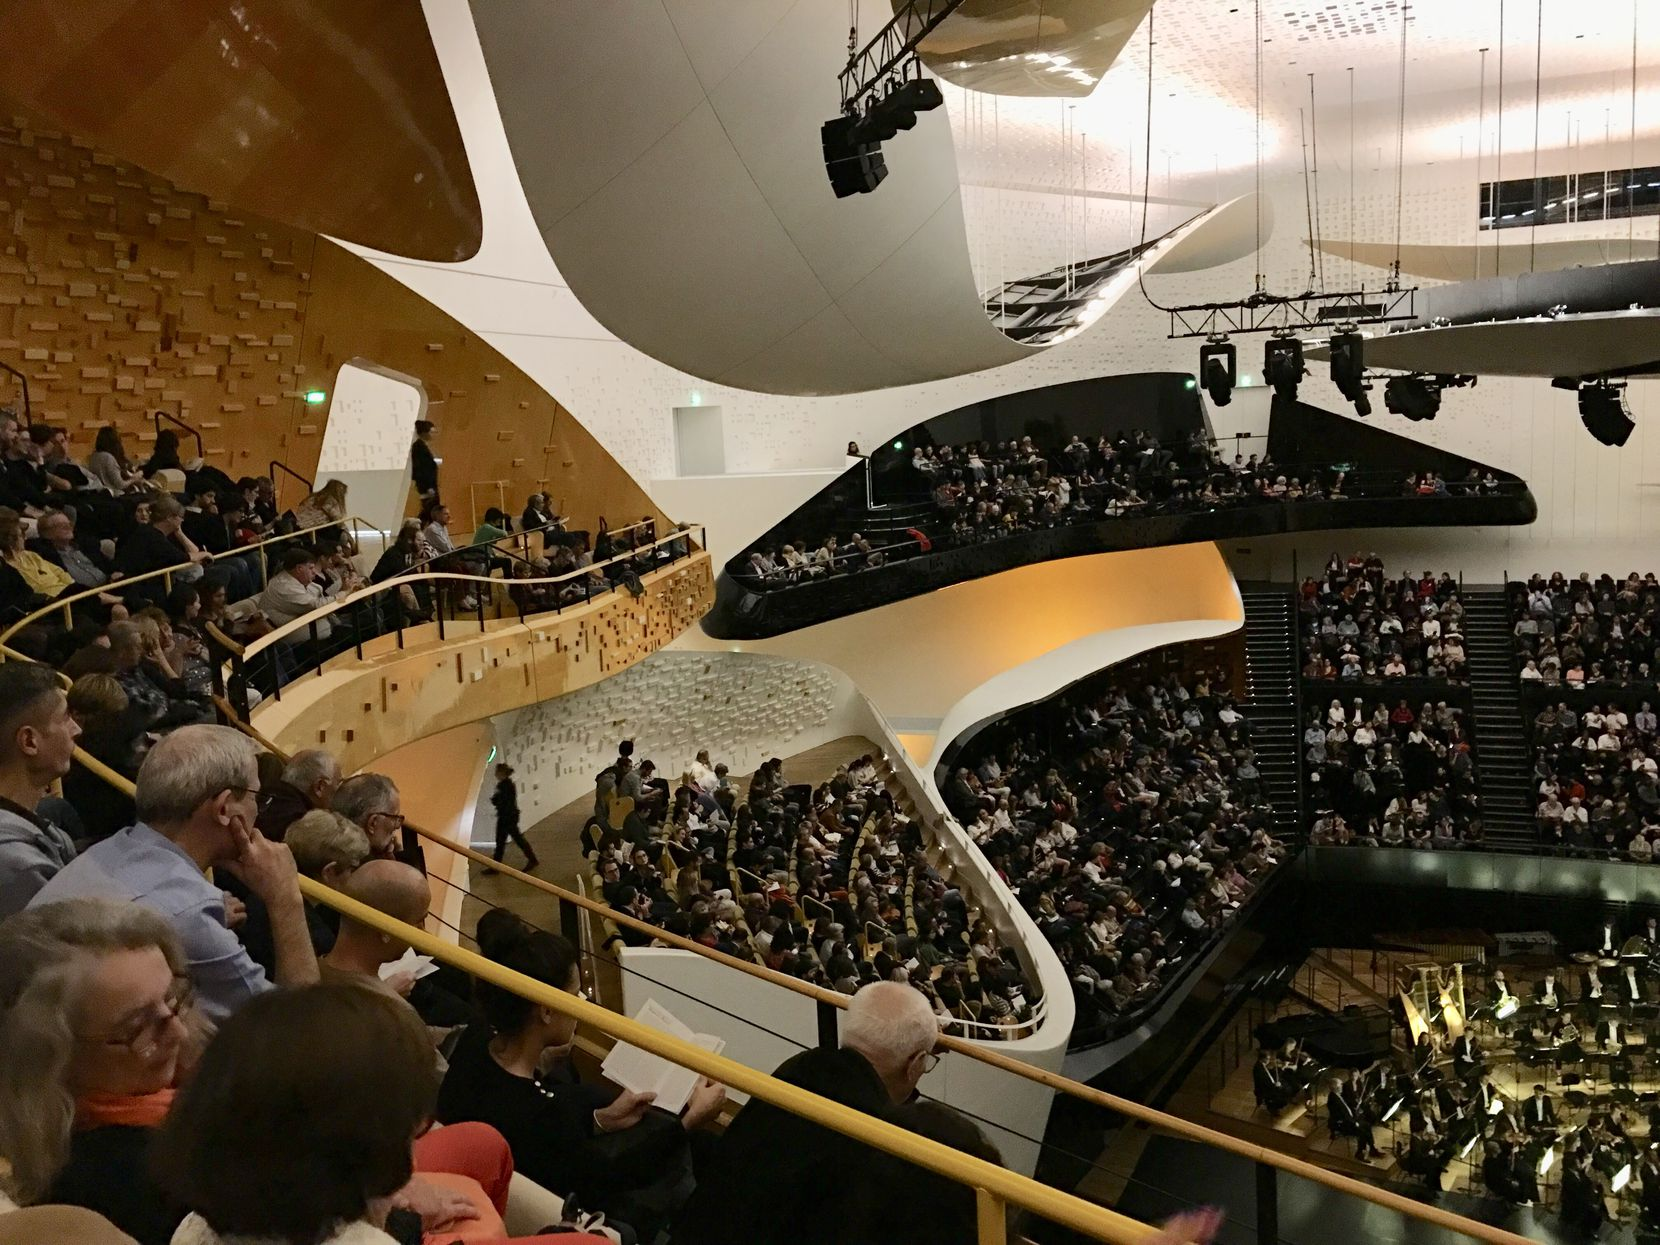 A view inside the Philharmonie de Paris concert venue during the Orchestre National de Lyon concert on Oct. 4, 2019